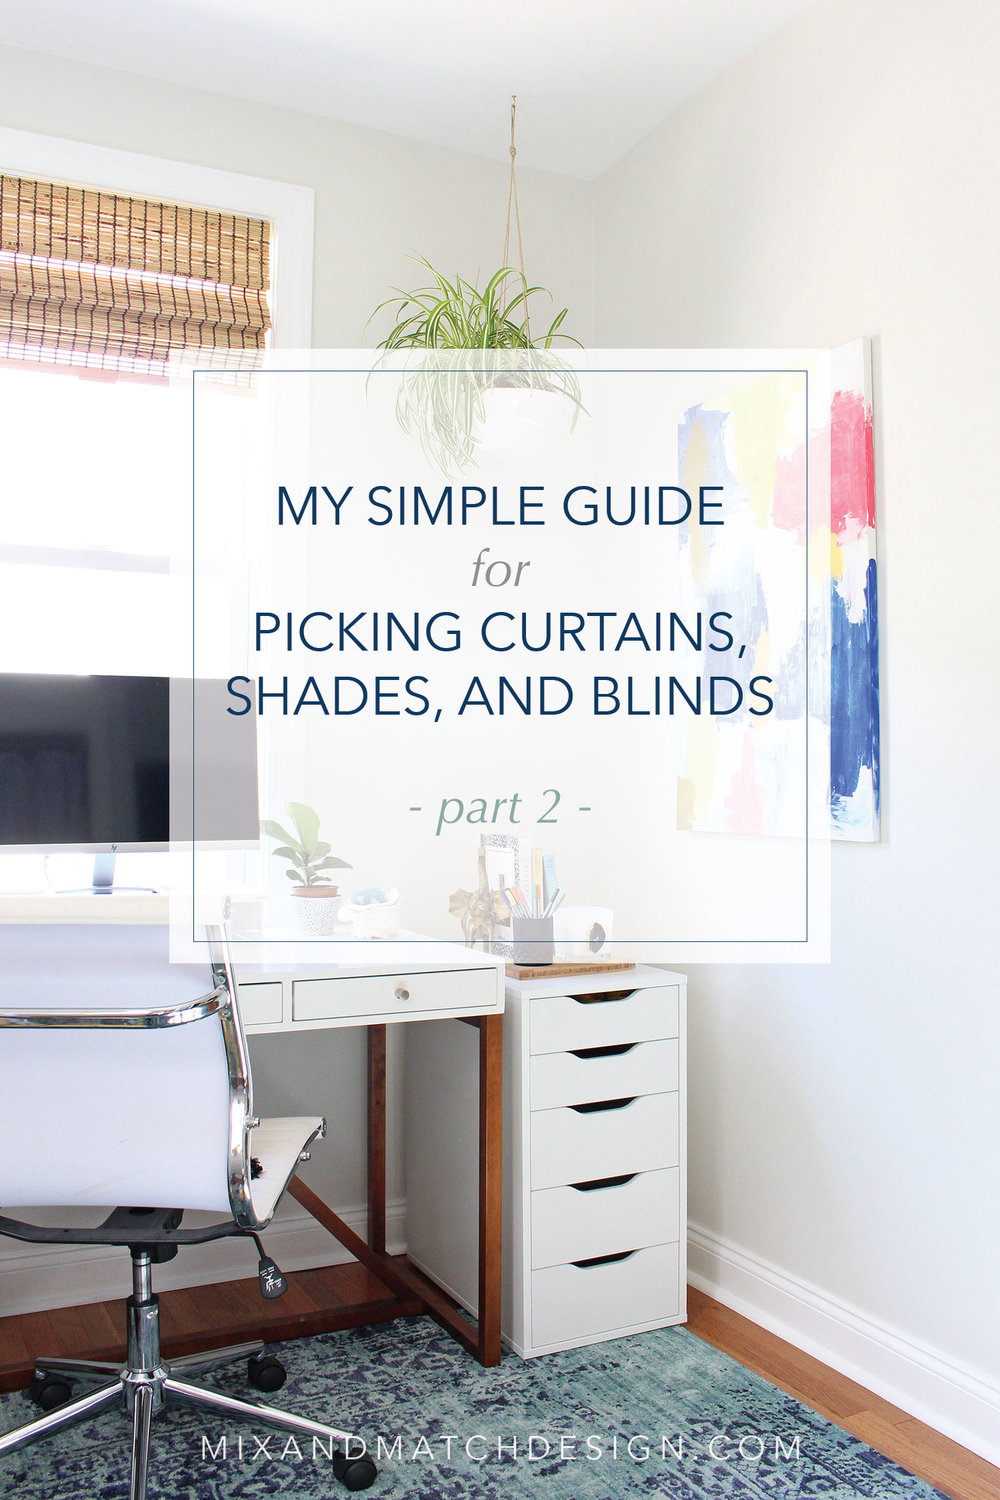 Want to know how to pick out curtains, shades, or blinds? It can feel overwhelming, I know! I've got a simple guide for you all about how to choose the right window treatments for your home over on the blog. Come on over and learn more!